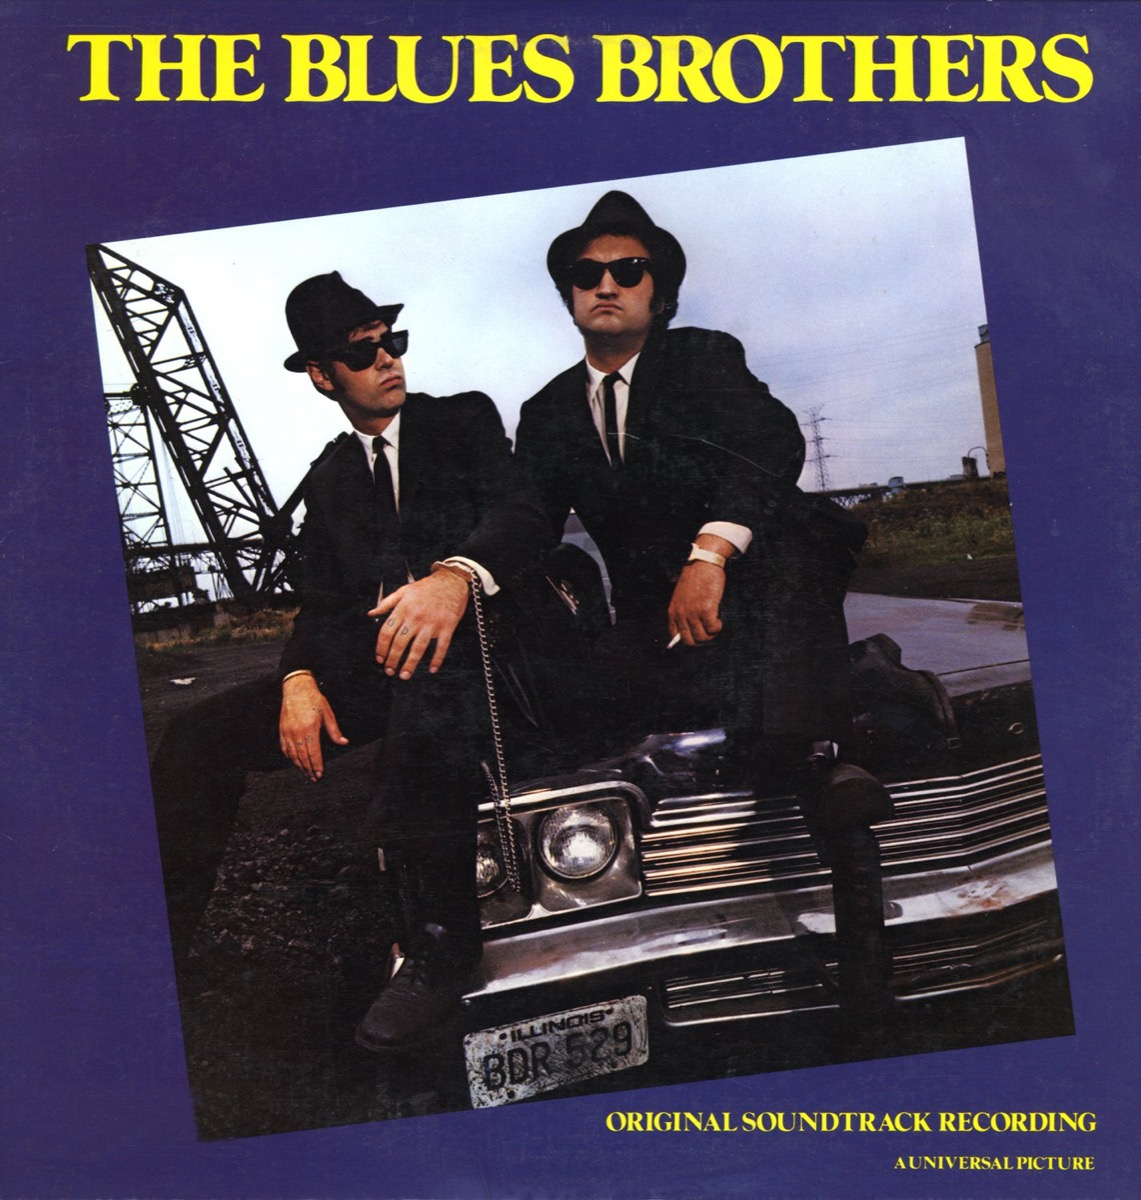 the blues brothers movie soundtrack